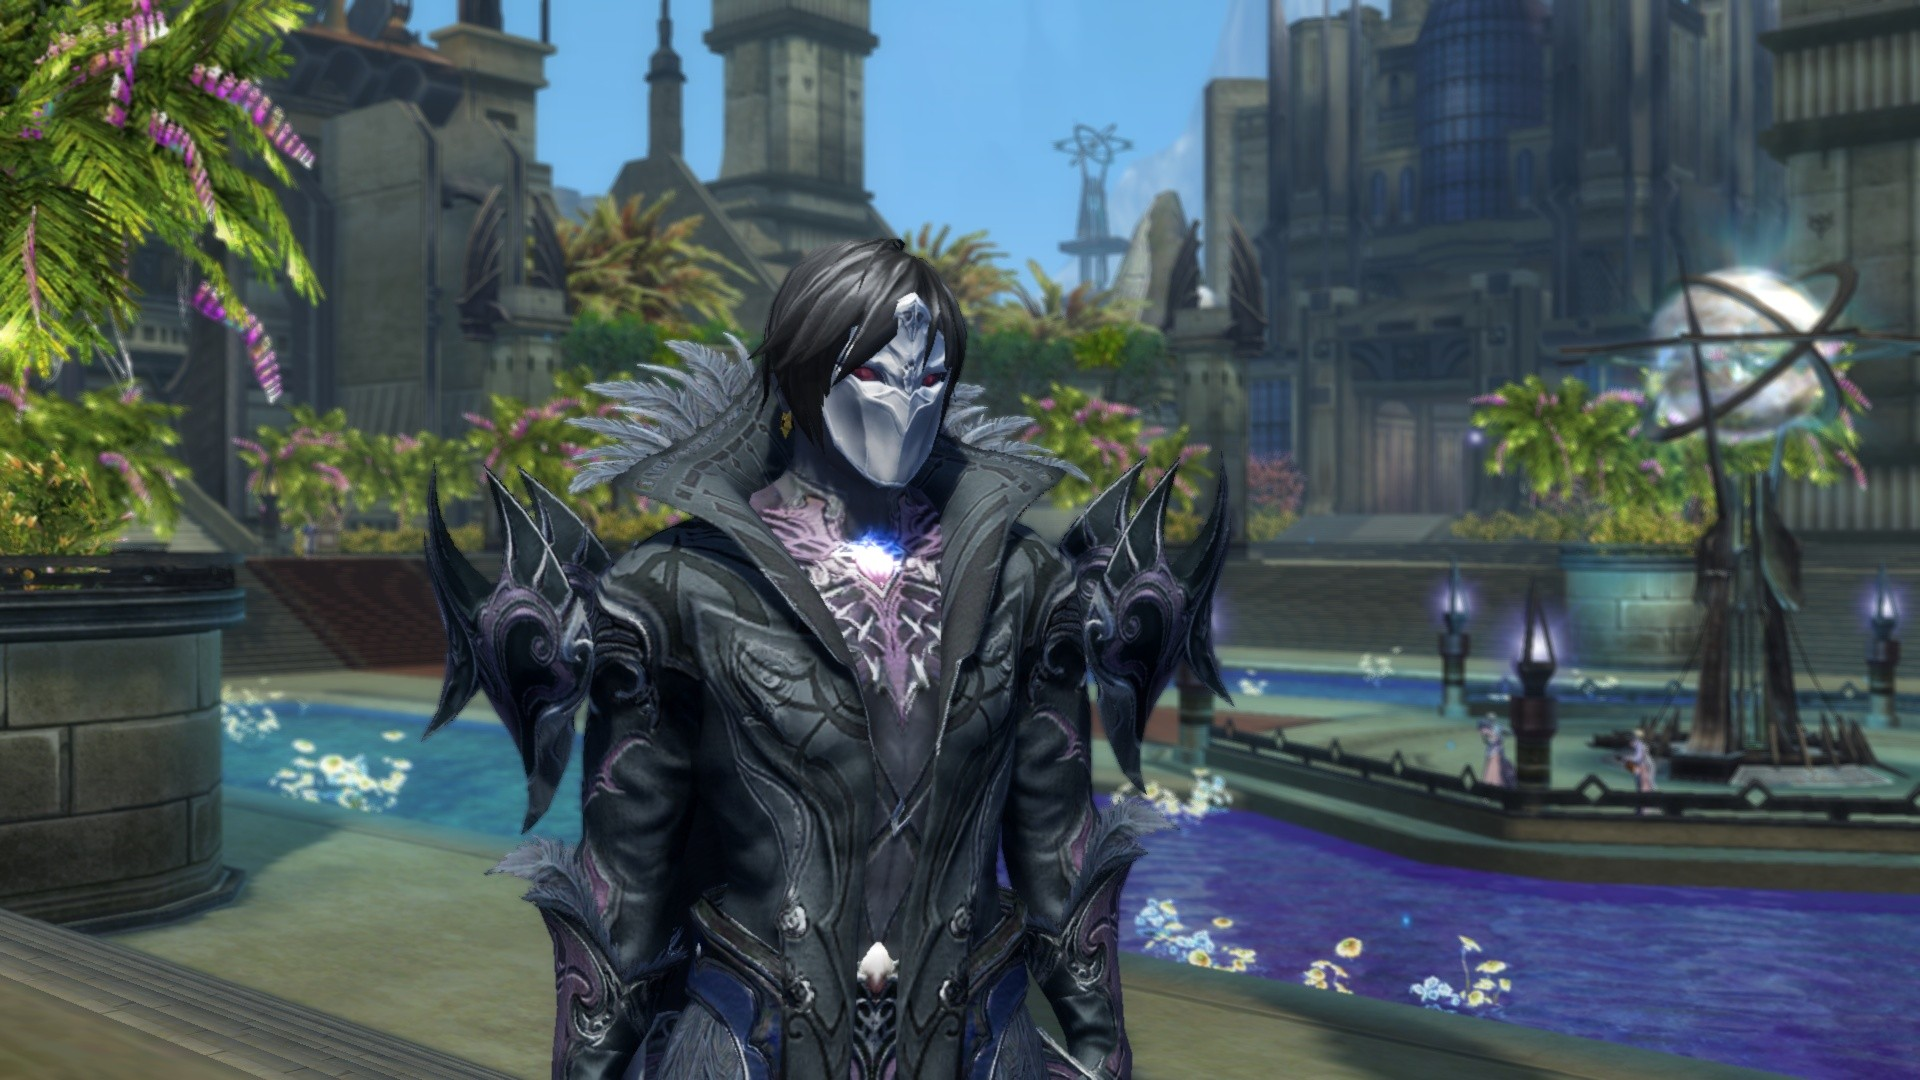 Aion - New Distance Focus Effect in 2.5 - blurs the background when zoomed on your character